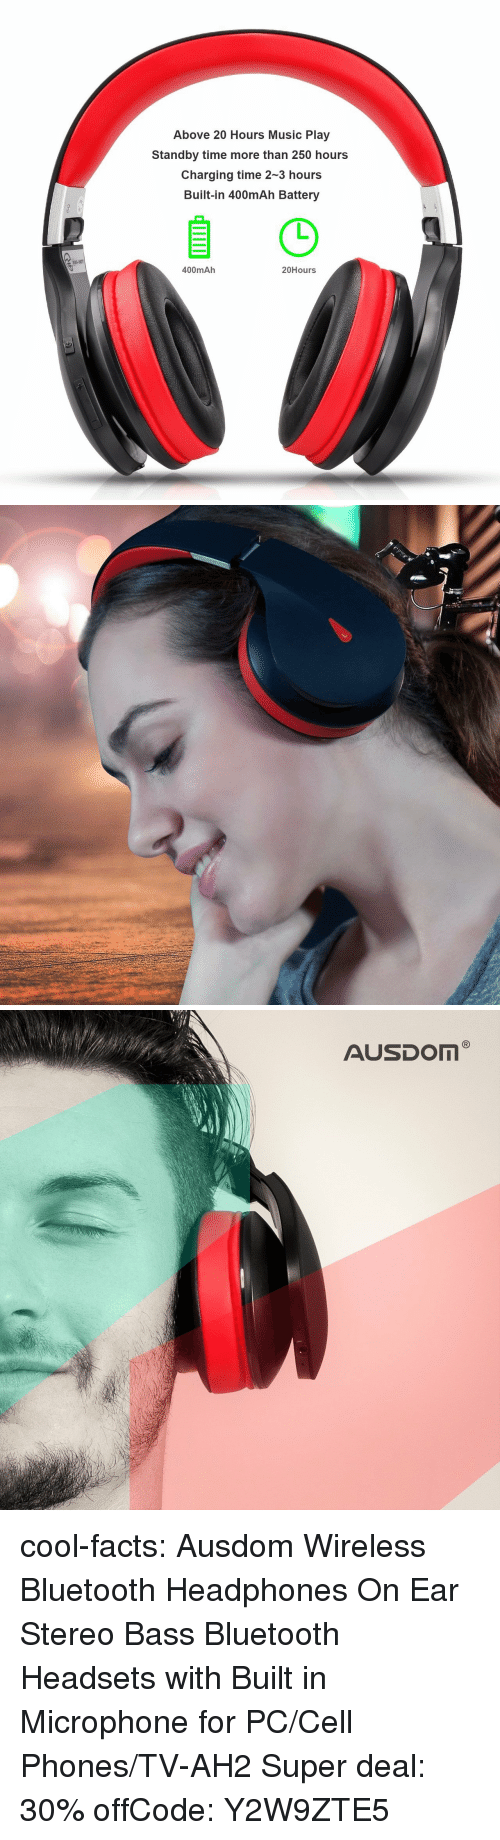 Amazon, Bluetooth, and Facts: Above 20 Hours Music Play  Standby time more than 250 hours  Charging time 2-3 hours  Built-in 400mAh Battery  400mAh  20Hours cool-facts:   Ausdom Wireless Bluetooth Headphones   On Ear Stereo Bass Bluetooth Headsets with Built in Microphone for PC/Cell Phones/TV-AH2   Super deal: 30% offCode: Y2W9ZTE5